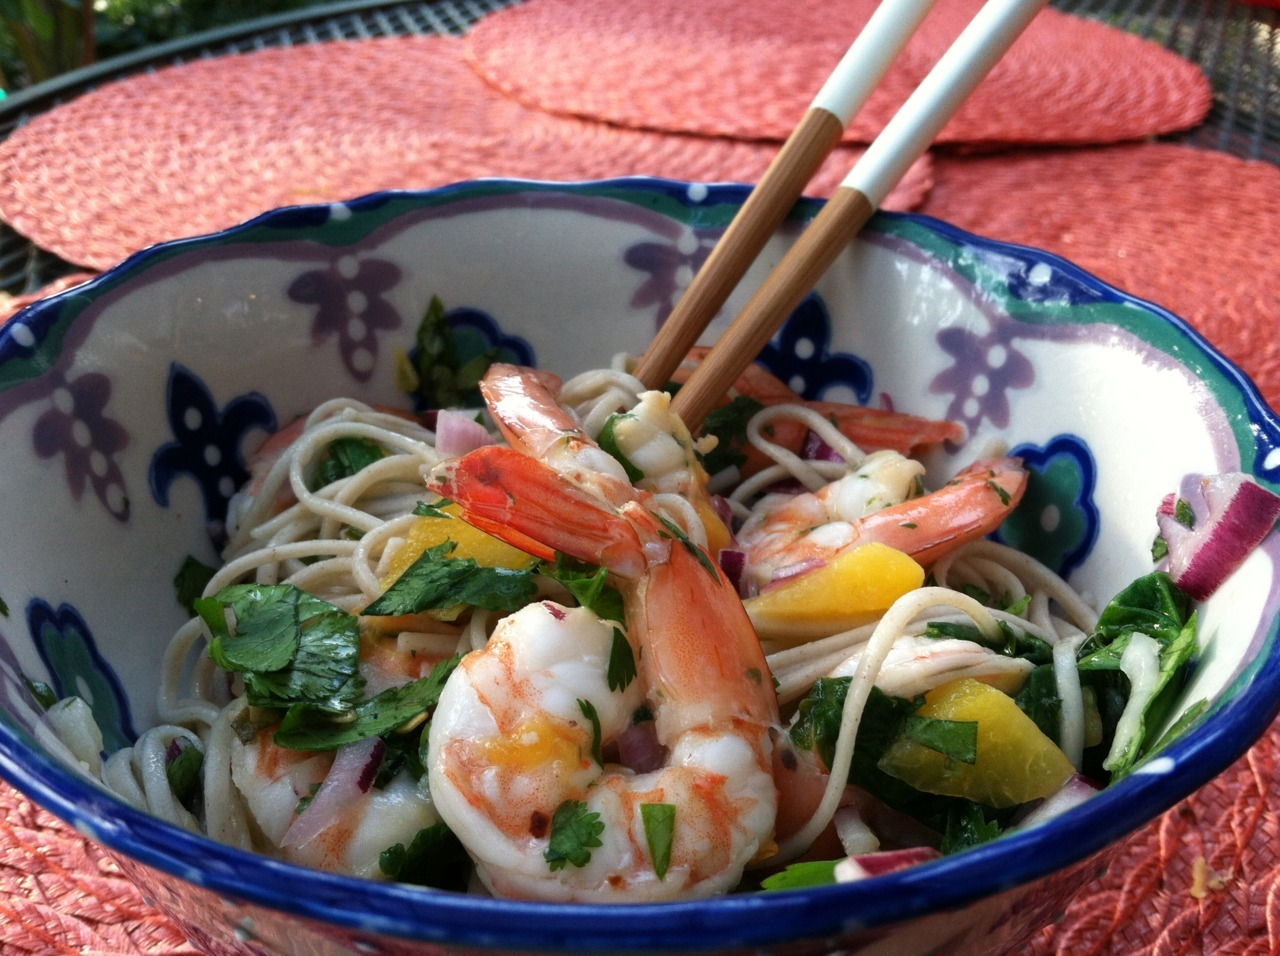 Basil Mint Soba Noodle Salad with Shrimp and Peaches 1/2 cup rice vinegar 2 tsp sugar 1/2 tsp salt 3 garlic cloves, crusehd 1/2 fresh red chili, finely chopped 1/2 tsp toasted sesame oil grated zest and juice of 1 lime 1/2 cup cup basil leaves, chopped (if you can get use some Thai basil, but much less of it) 1/2 cup mint leaves 2 1/2 cups cilantro leaves, chopped 1/2 red onion, very thinly sliced 1 cup chopped peaches Marinate shrimp in lime juice and garlic salt and parsley and a bit of pepper to taste.  In a small saucepan gently warm the vinegar, sugar, and salt for up to 1 minute, just until the sugar dissolves. Remove from the heat and add the garlic, chile and sesame oil. Allow to cool, then add the lime zest and juice.  Cook the noodles in plenty of boiling salted water, stirring occasionally. They should take 5-8 minutes to become tender but still al dente. Drain and rinse well under running cold water. Shake off as much of the excess water as possible, then leave to dry on a dish towel. Sautee shrimp in skillet with cooking spray until just good through, about 3 minutes.  In a mixing bowl toss the noodles with the dressing, peaches, shrimp, half of the herbs and the onion. You can now leave this aside for 1 to 2 hours. Whne ready to serve add the rest of the herbs and mix well, then pile on a plate or in a bowl.   Adapted via Yotam Ottolenghi's Soba Noodles with Eggplant and Mango and Wholeliving's Papaya, Shrimp, and Soba Salad